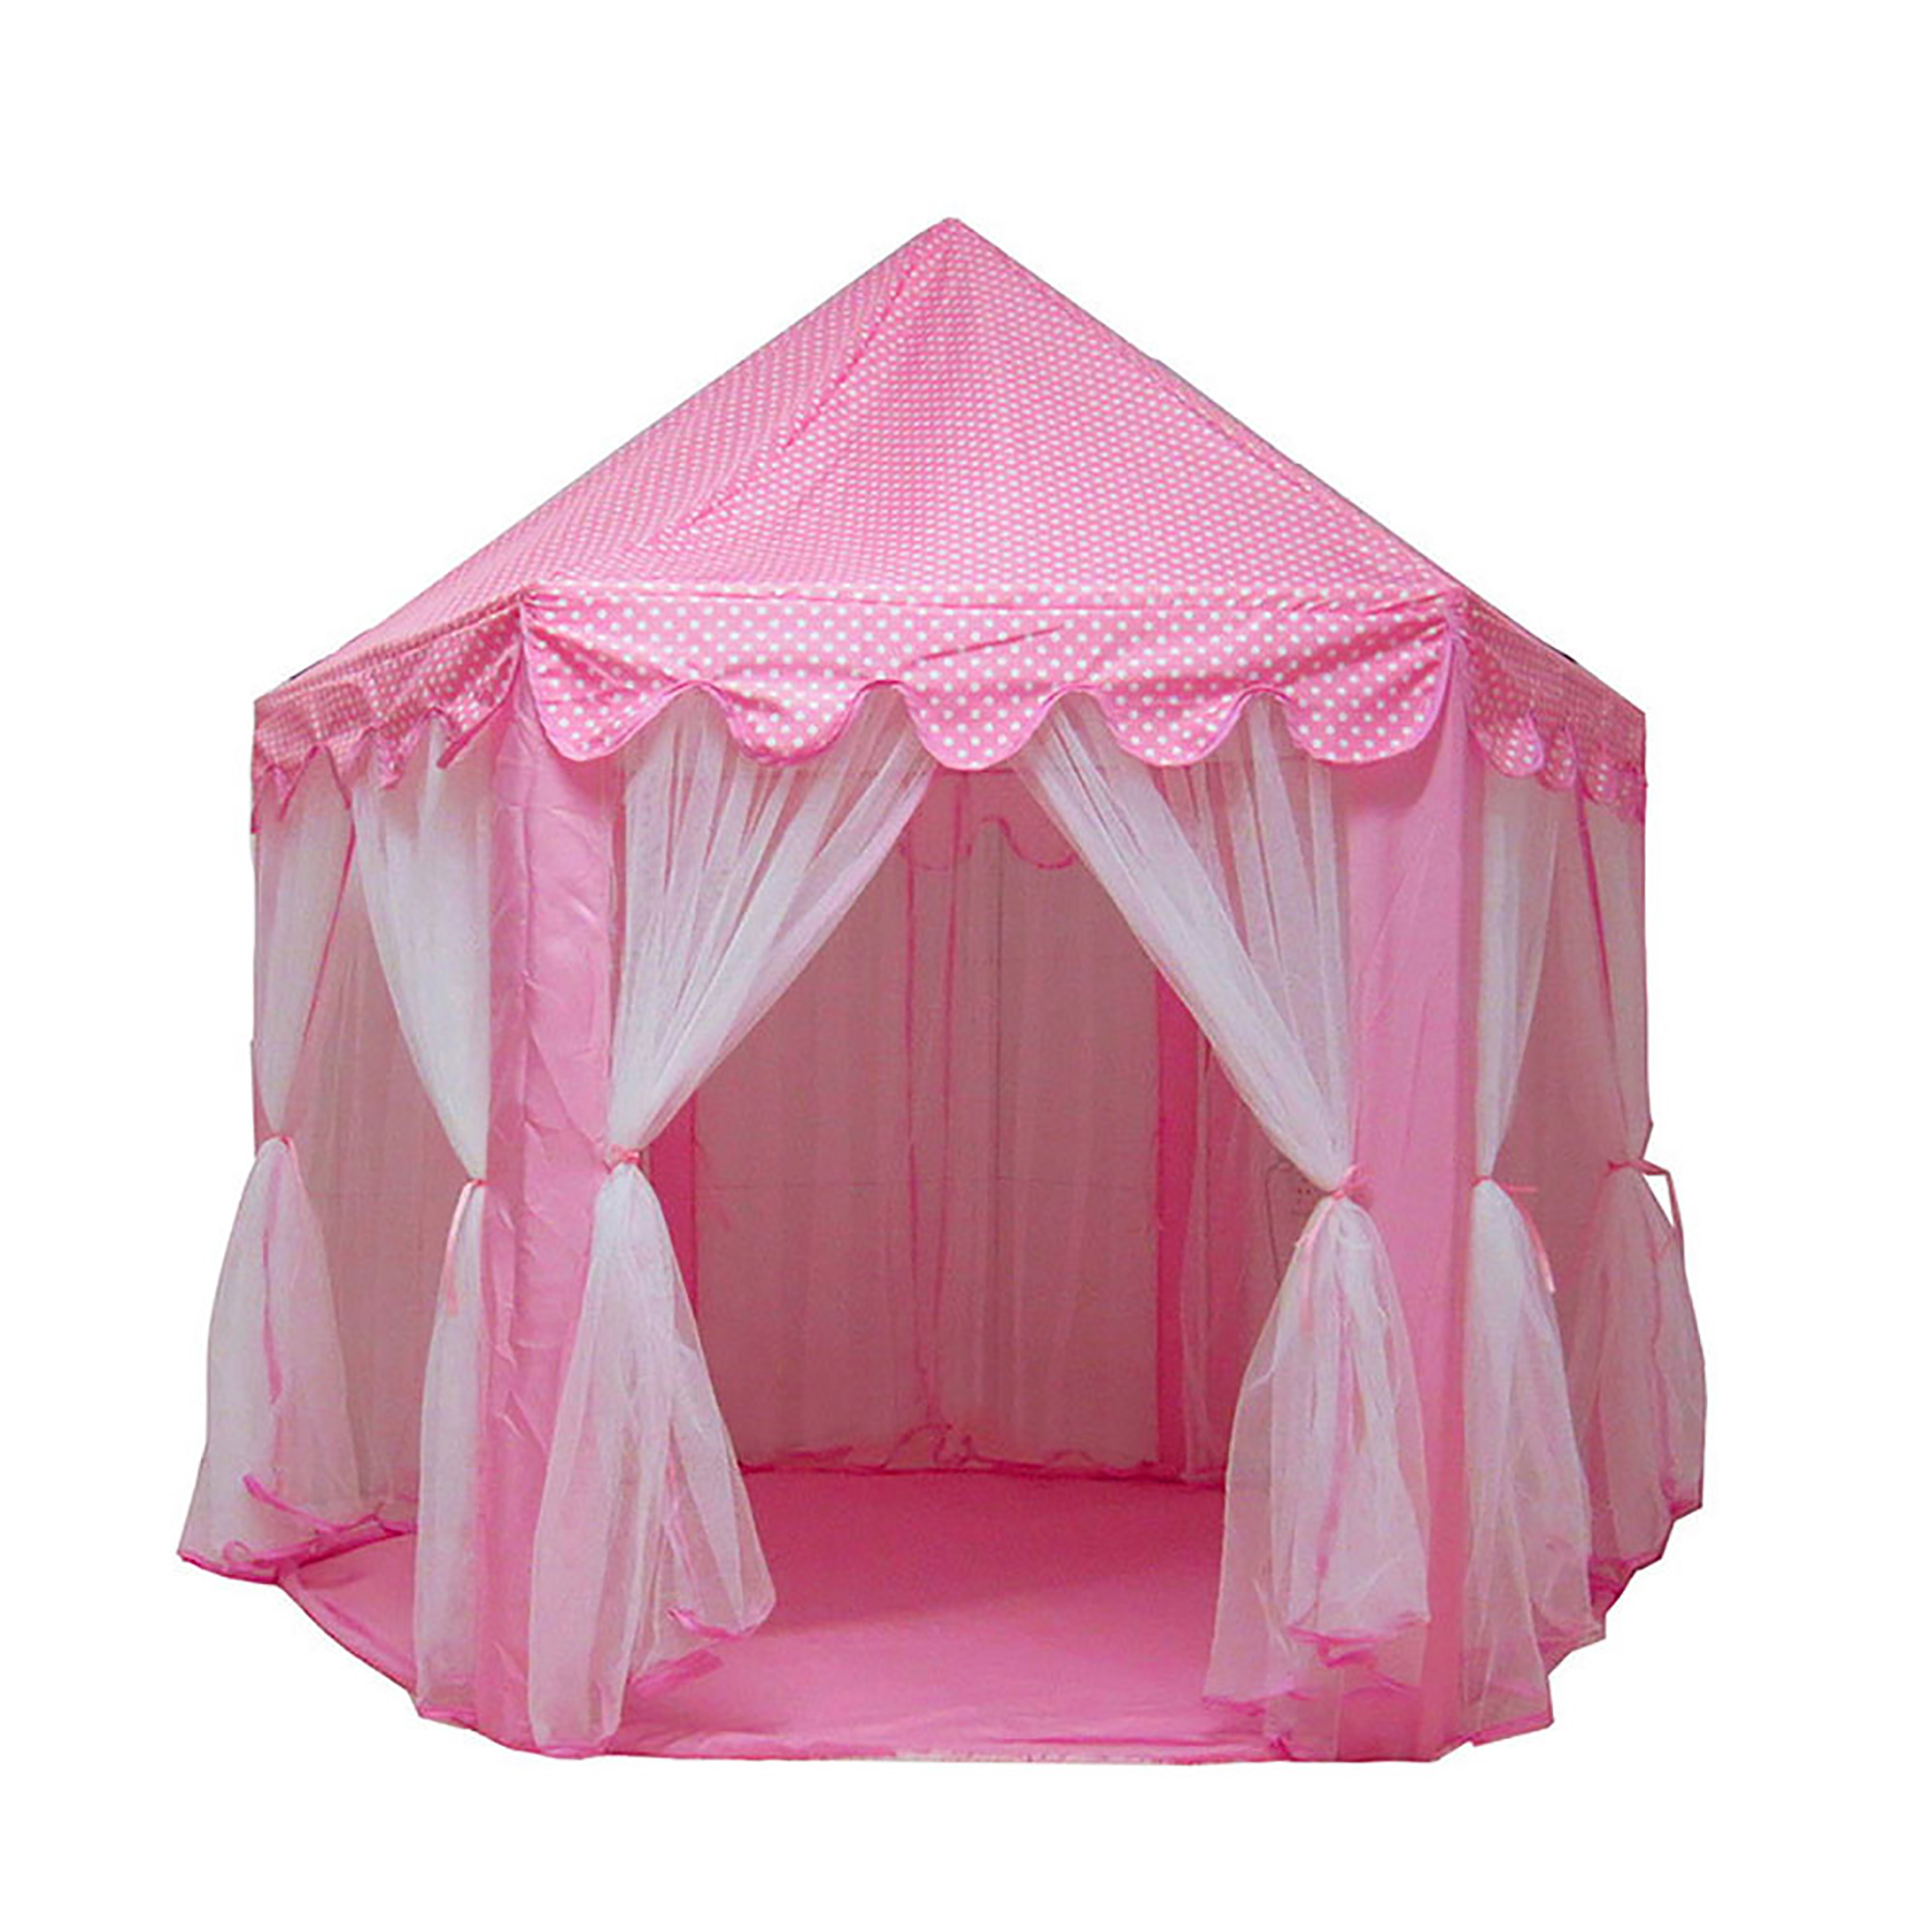 Tents For Girls Princess Castle Play House Large Outdoor Kids Play Tent For Girls Pink Walmart Com Walmart Com